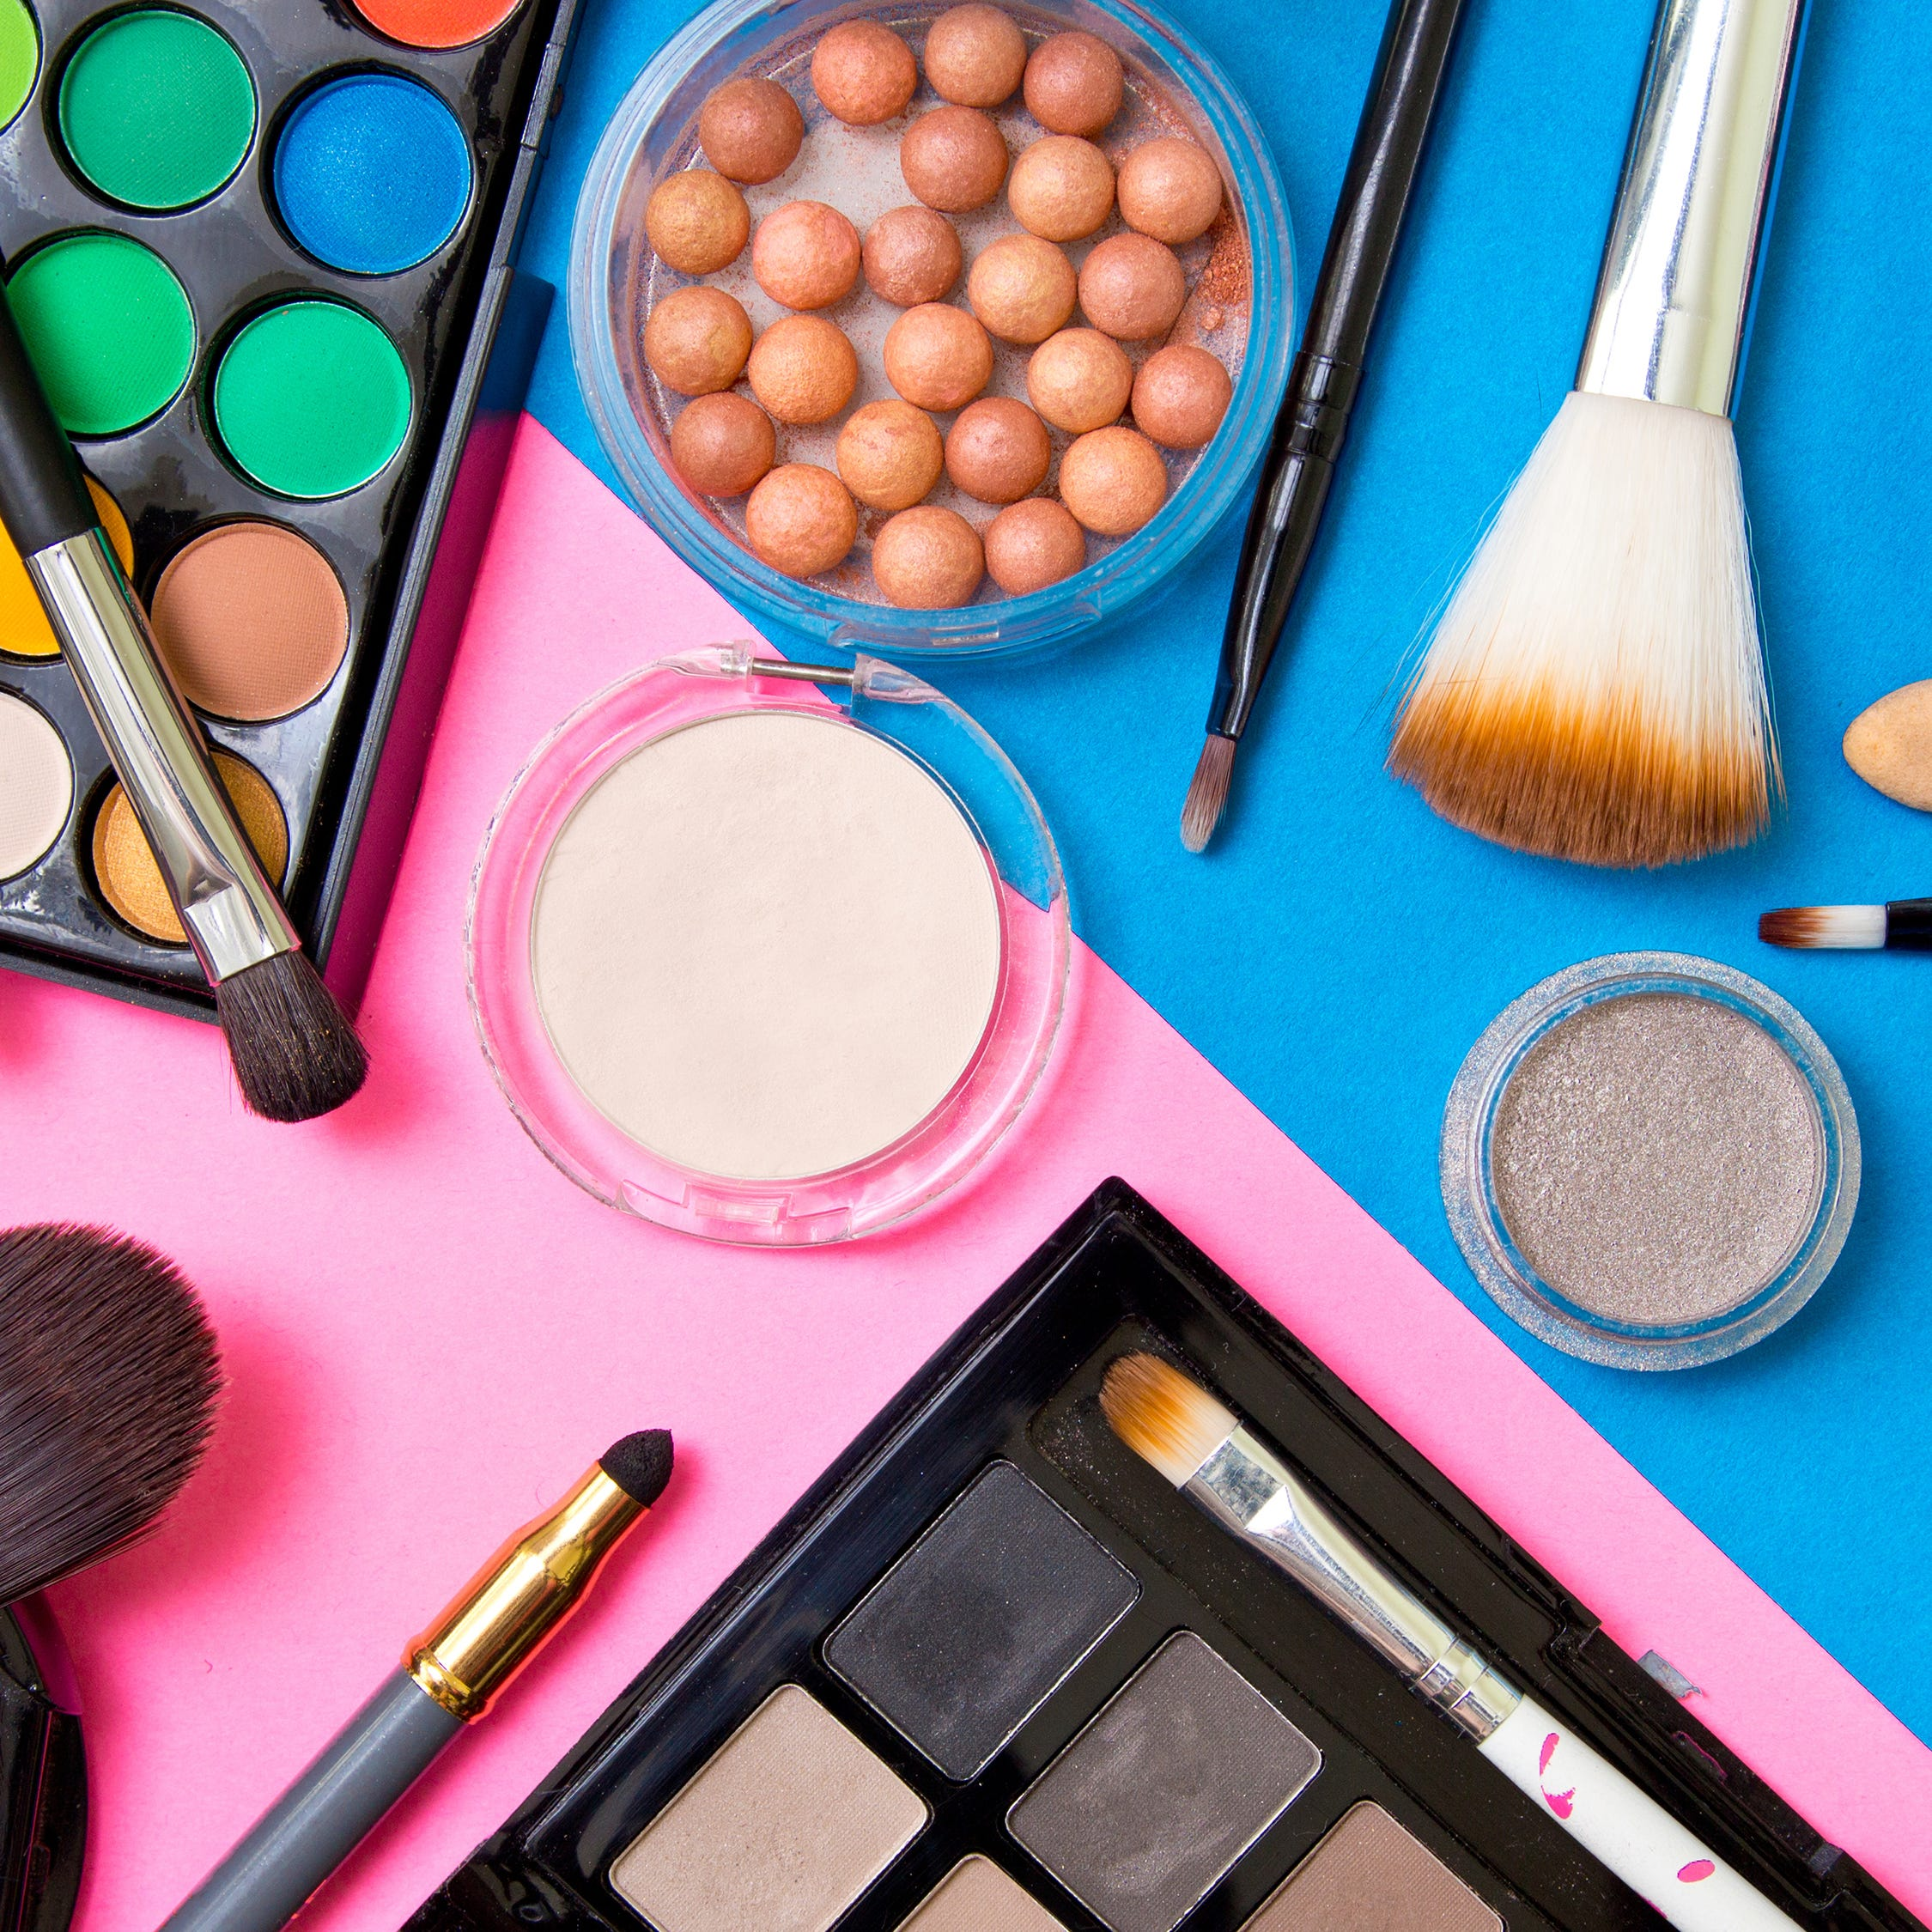 Stock up on your favorite makeup with Sephora's incredible spring sale.